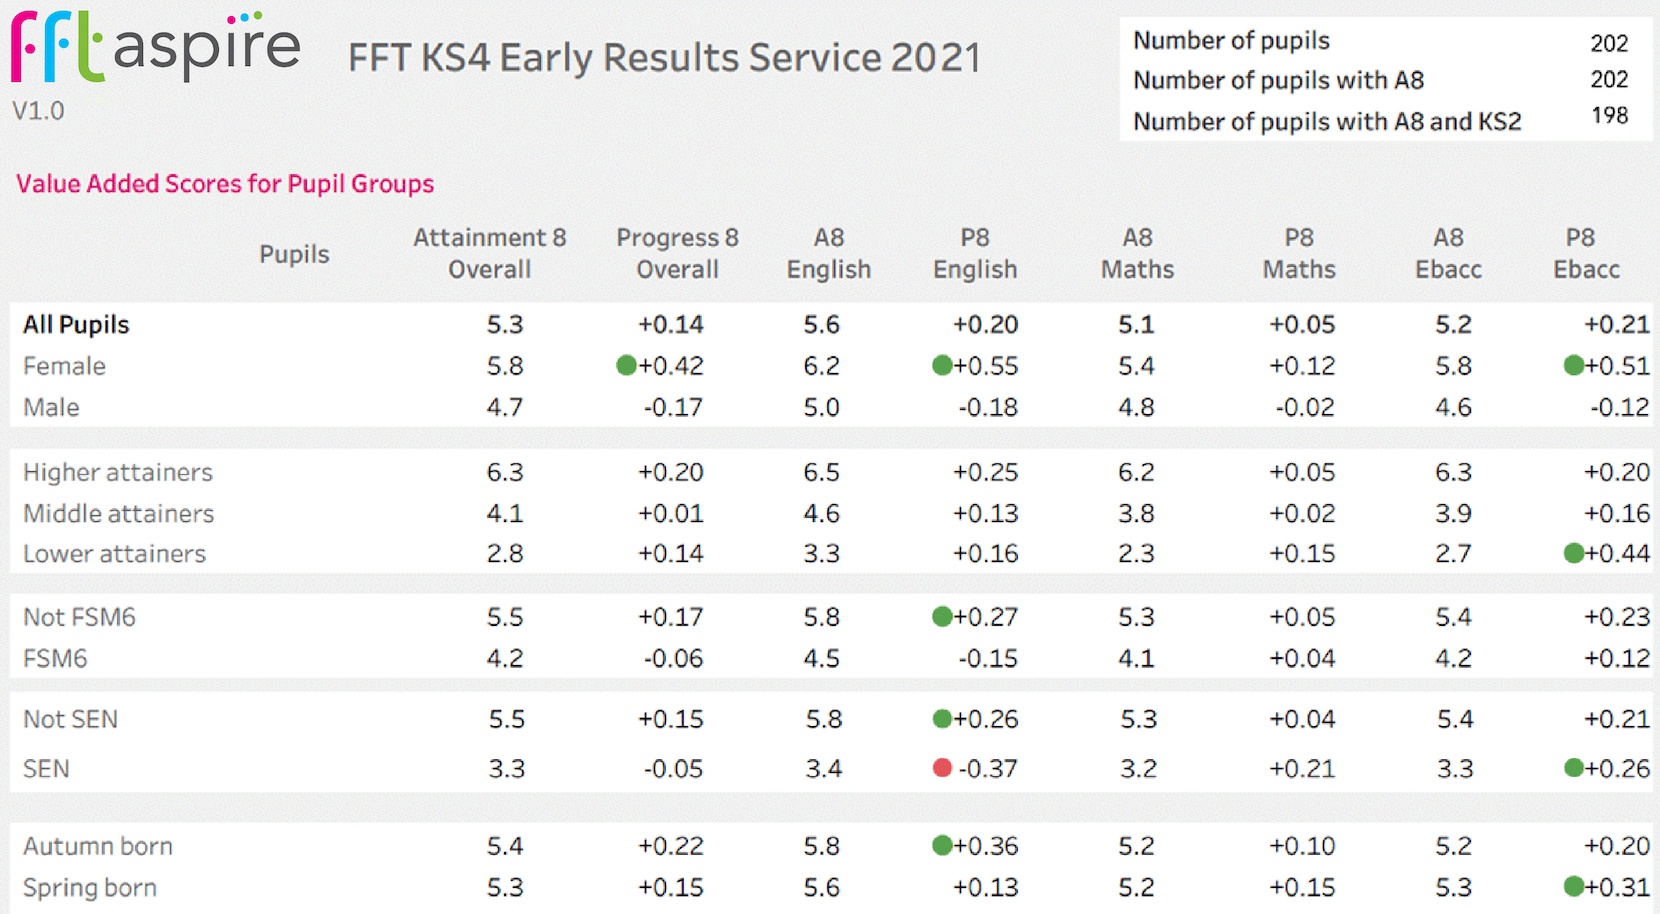 KS4 early results service 2021, showing a table with value added scores for pupil groups